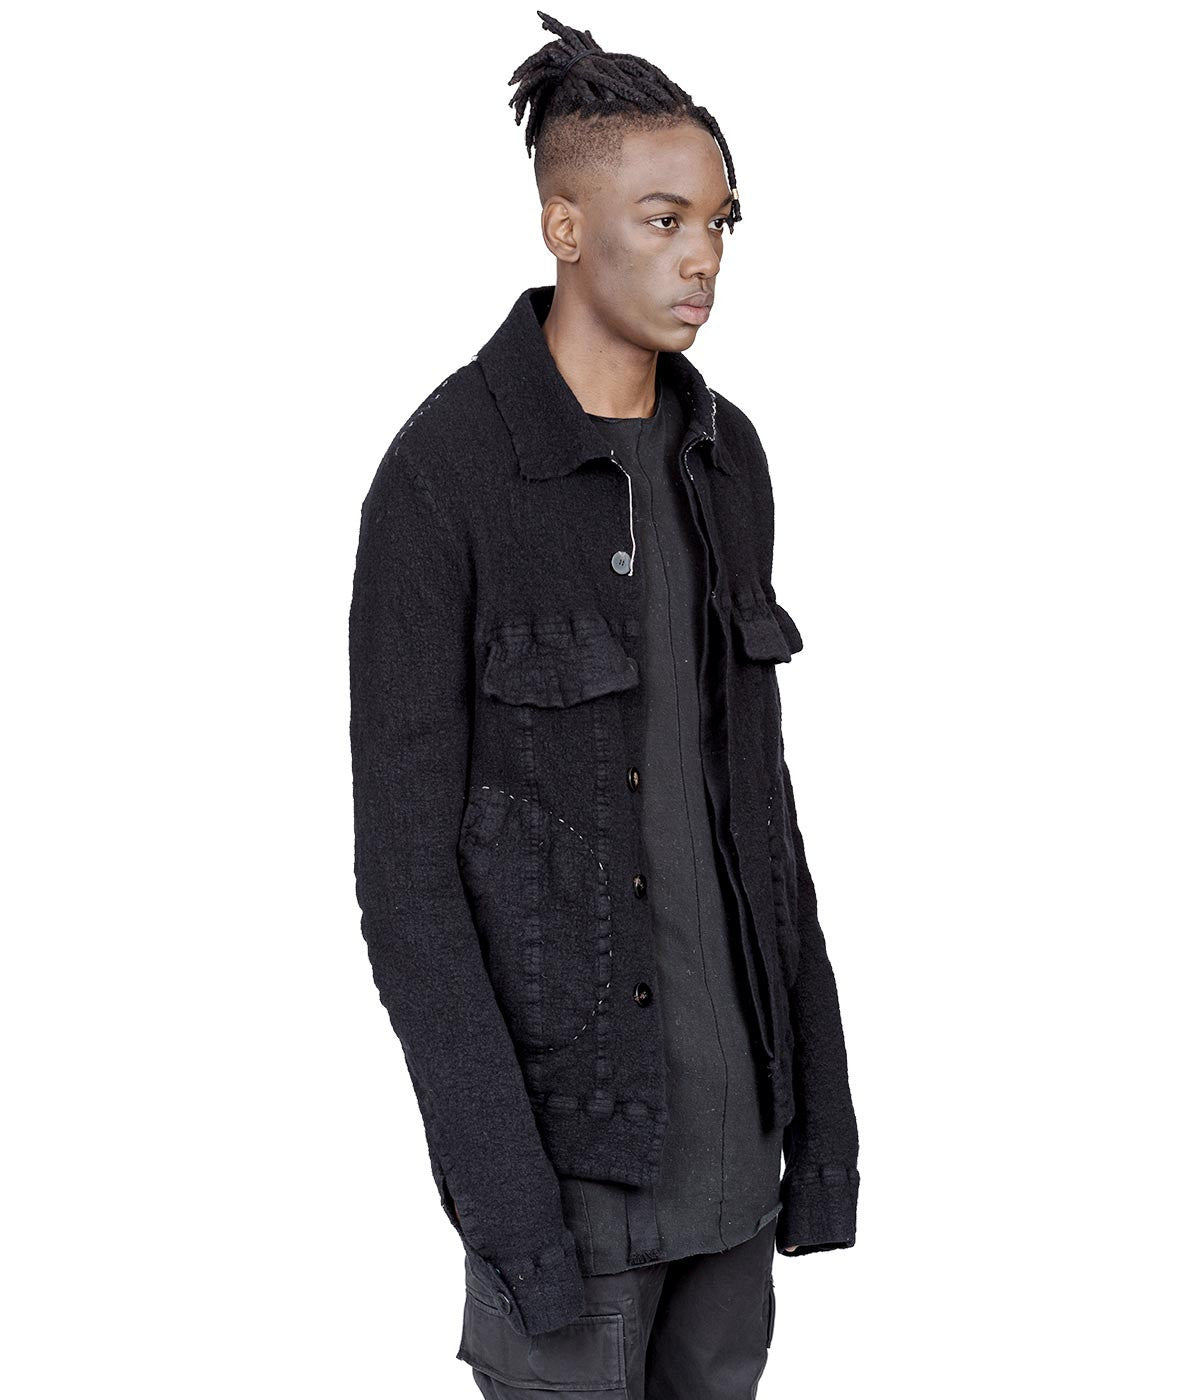 Black Shrink Washed Felted Wool Jacket